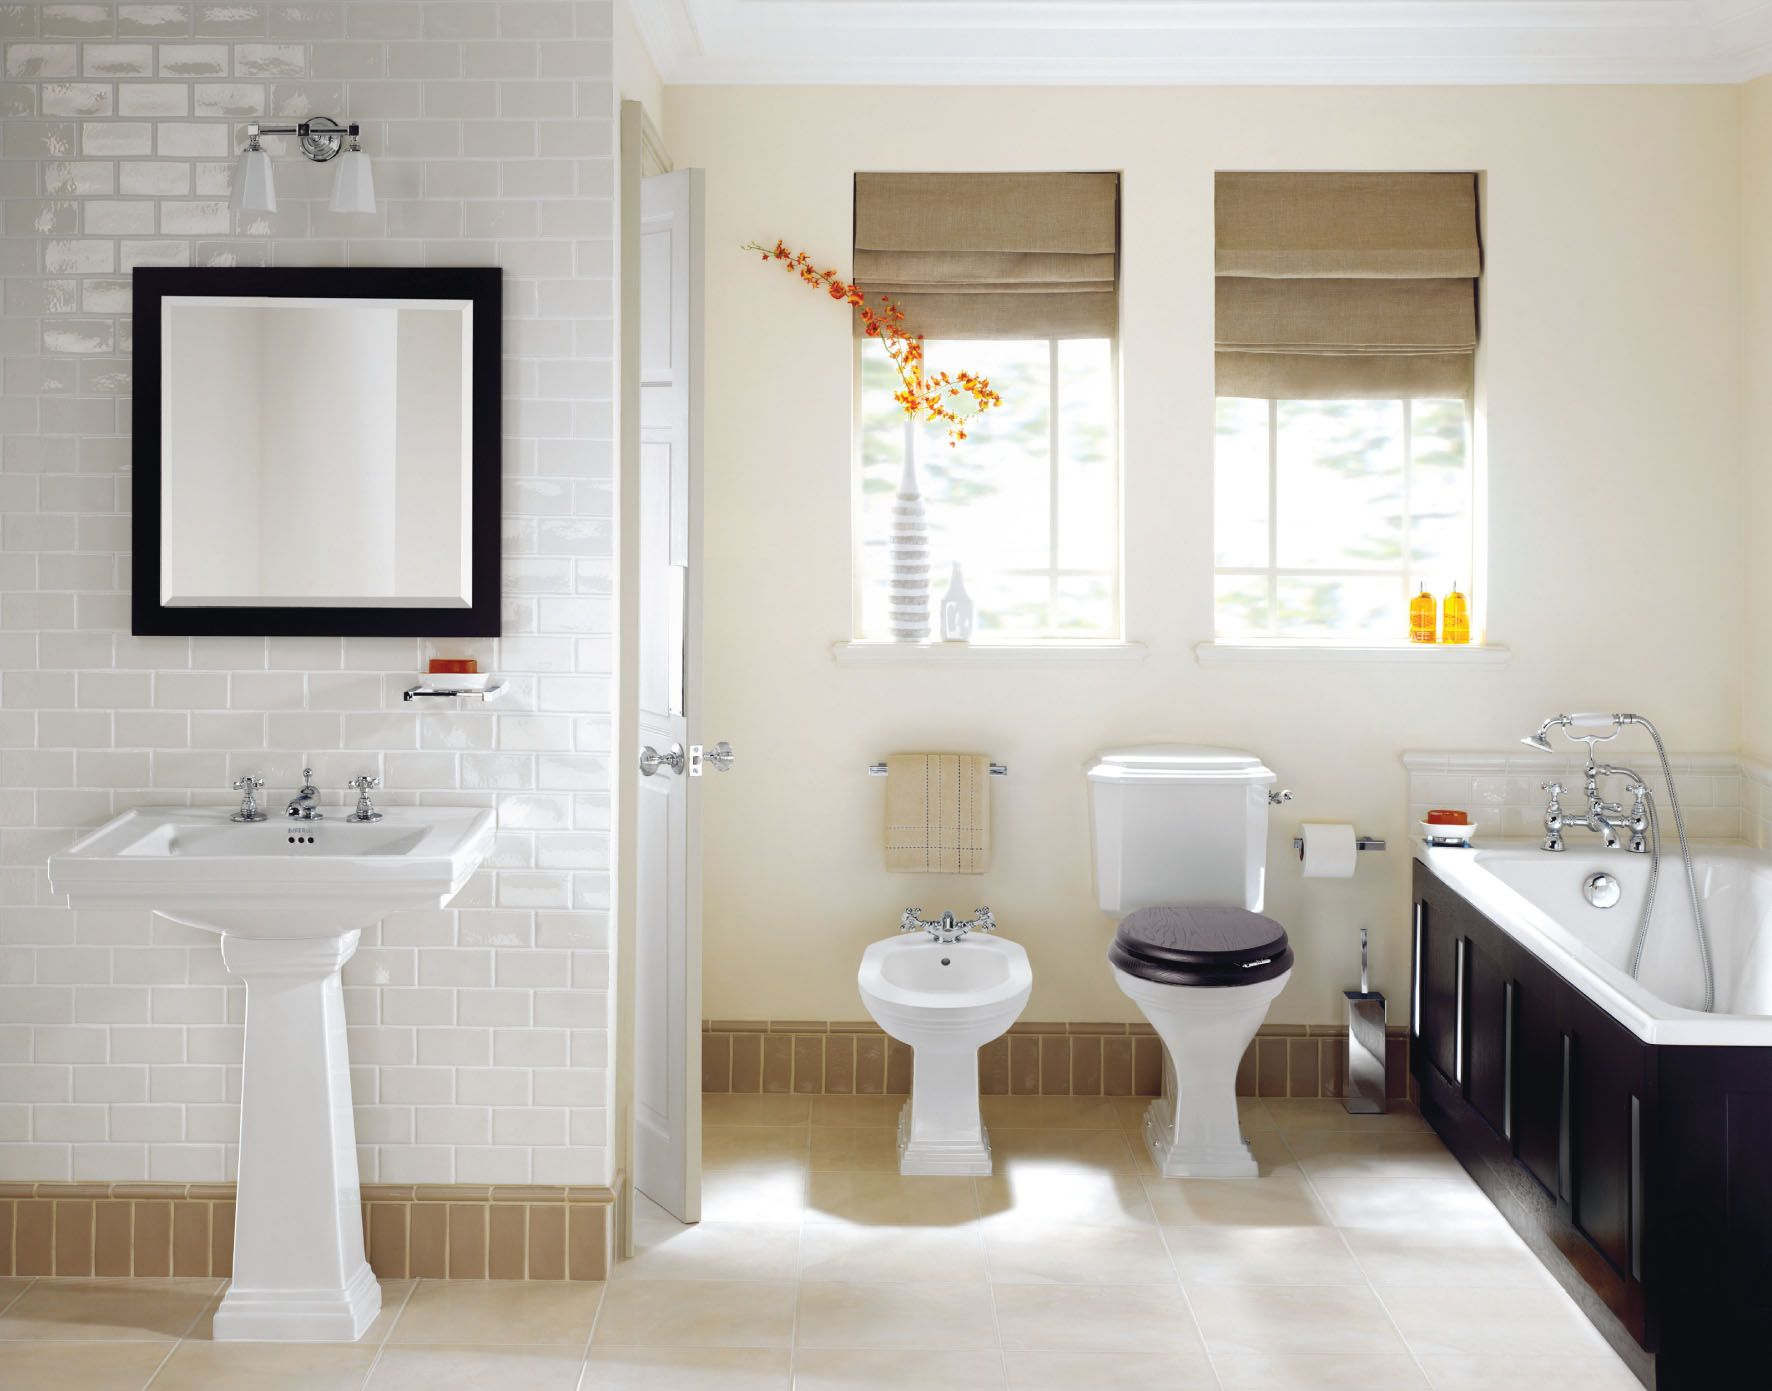 How to Make New Bathroom in Modern Design | Bathroom ideas ...